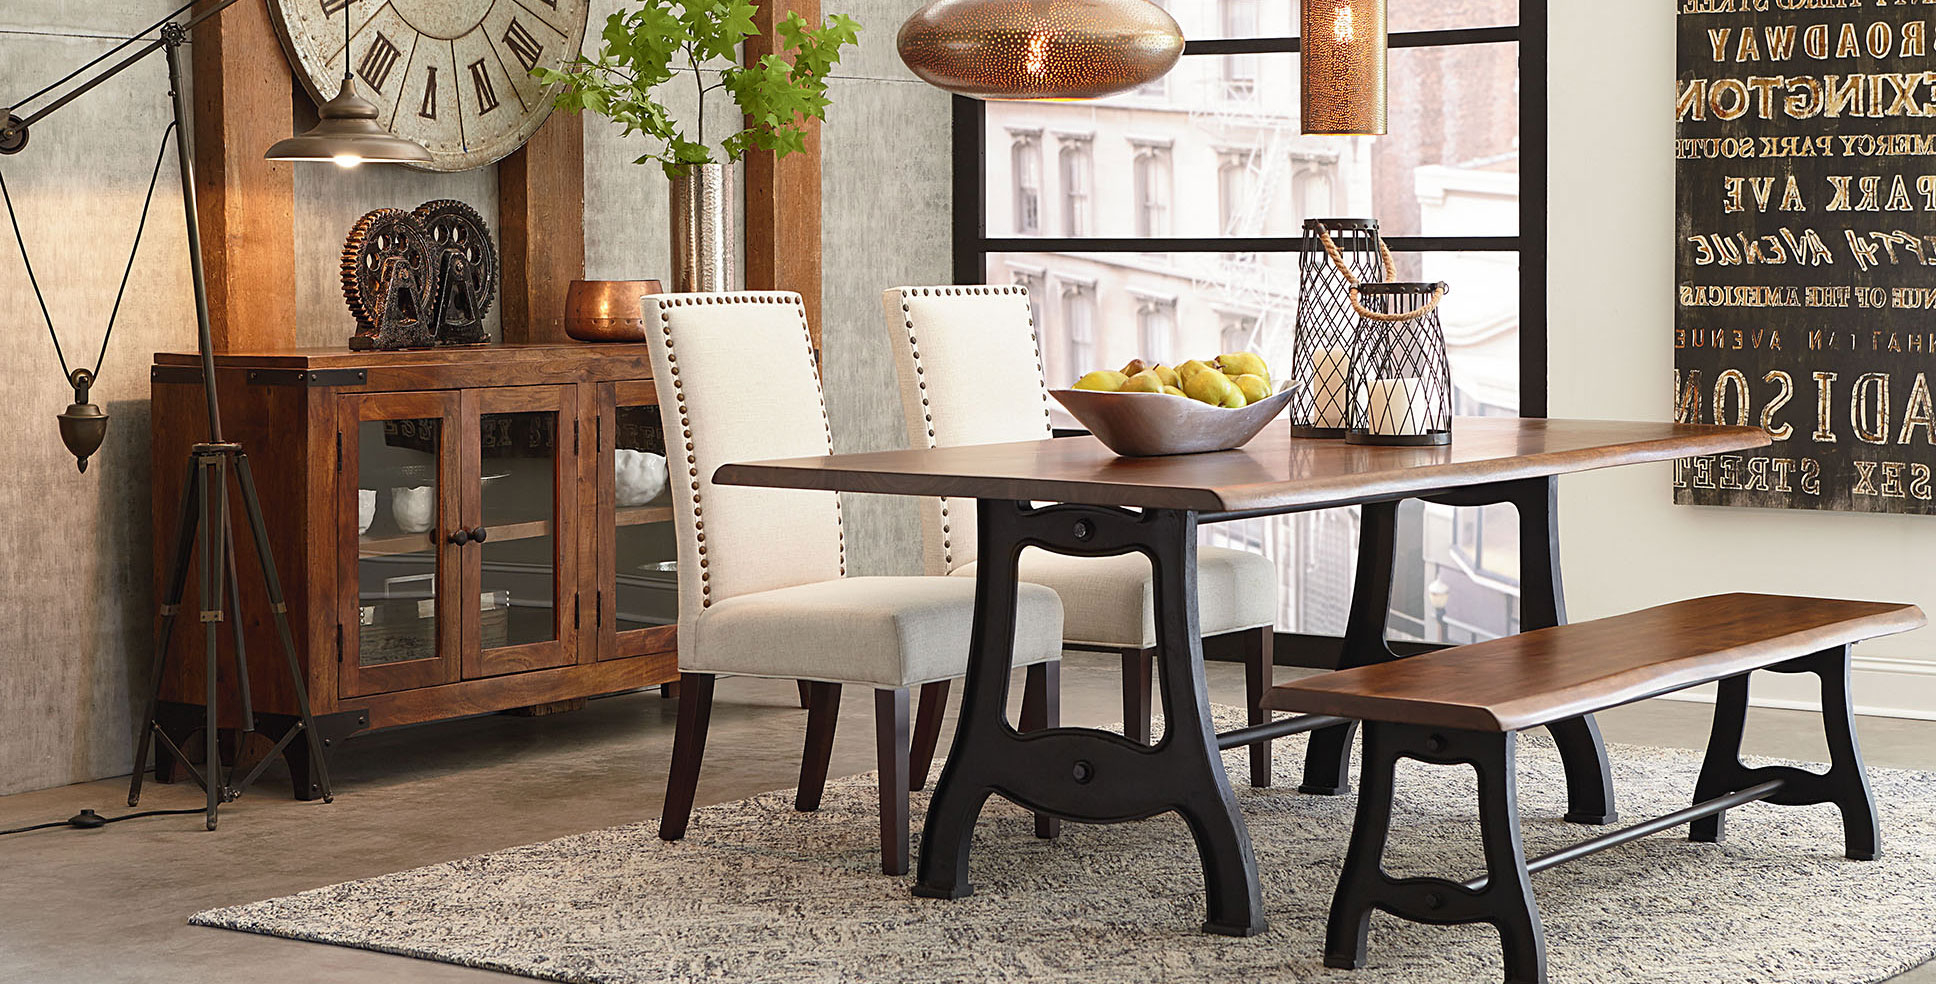 Rustic, Farmhouse, Vintage,mid Century Modern, & Industrial In 2018 Rustic Mid Century Modern 6 Seating Dining Tables In White And Natural Wood (View 20 of 30)